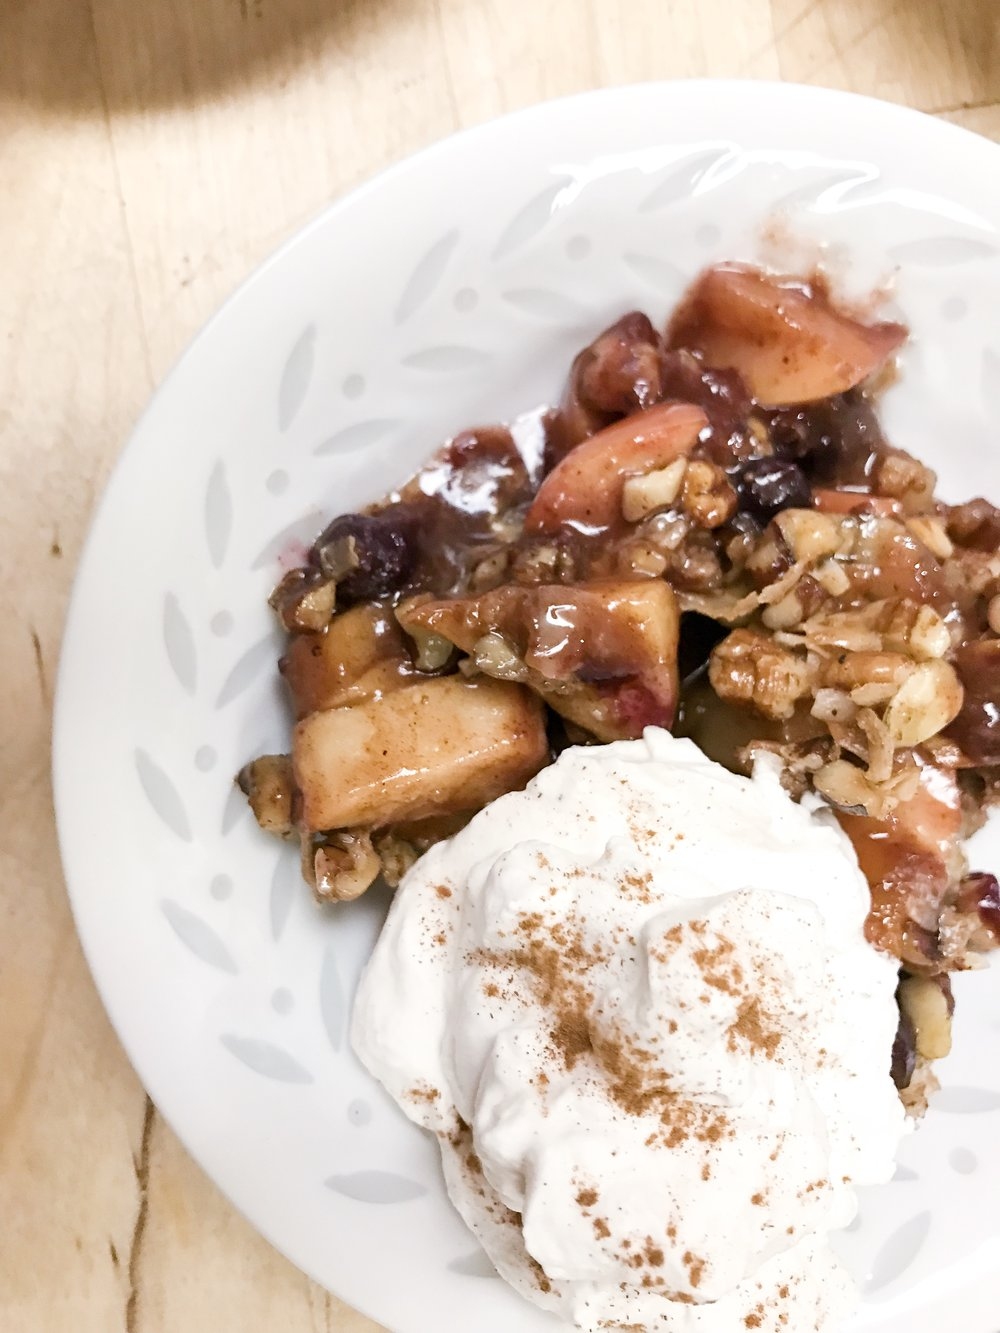 Paleo Apple Berry Crisp anyone? Yum.